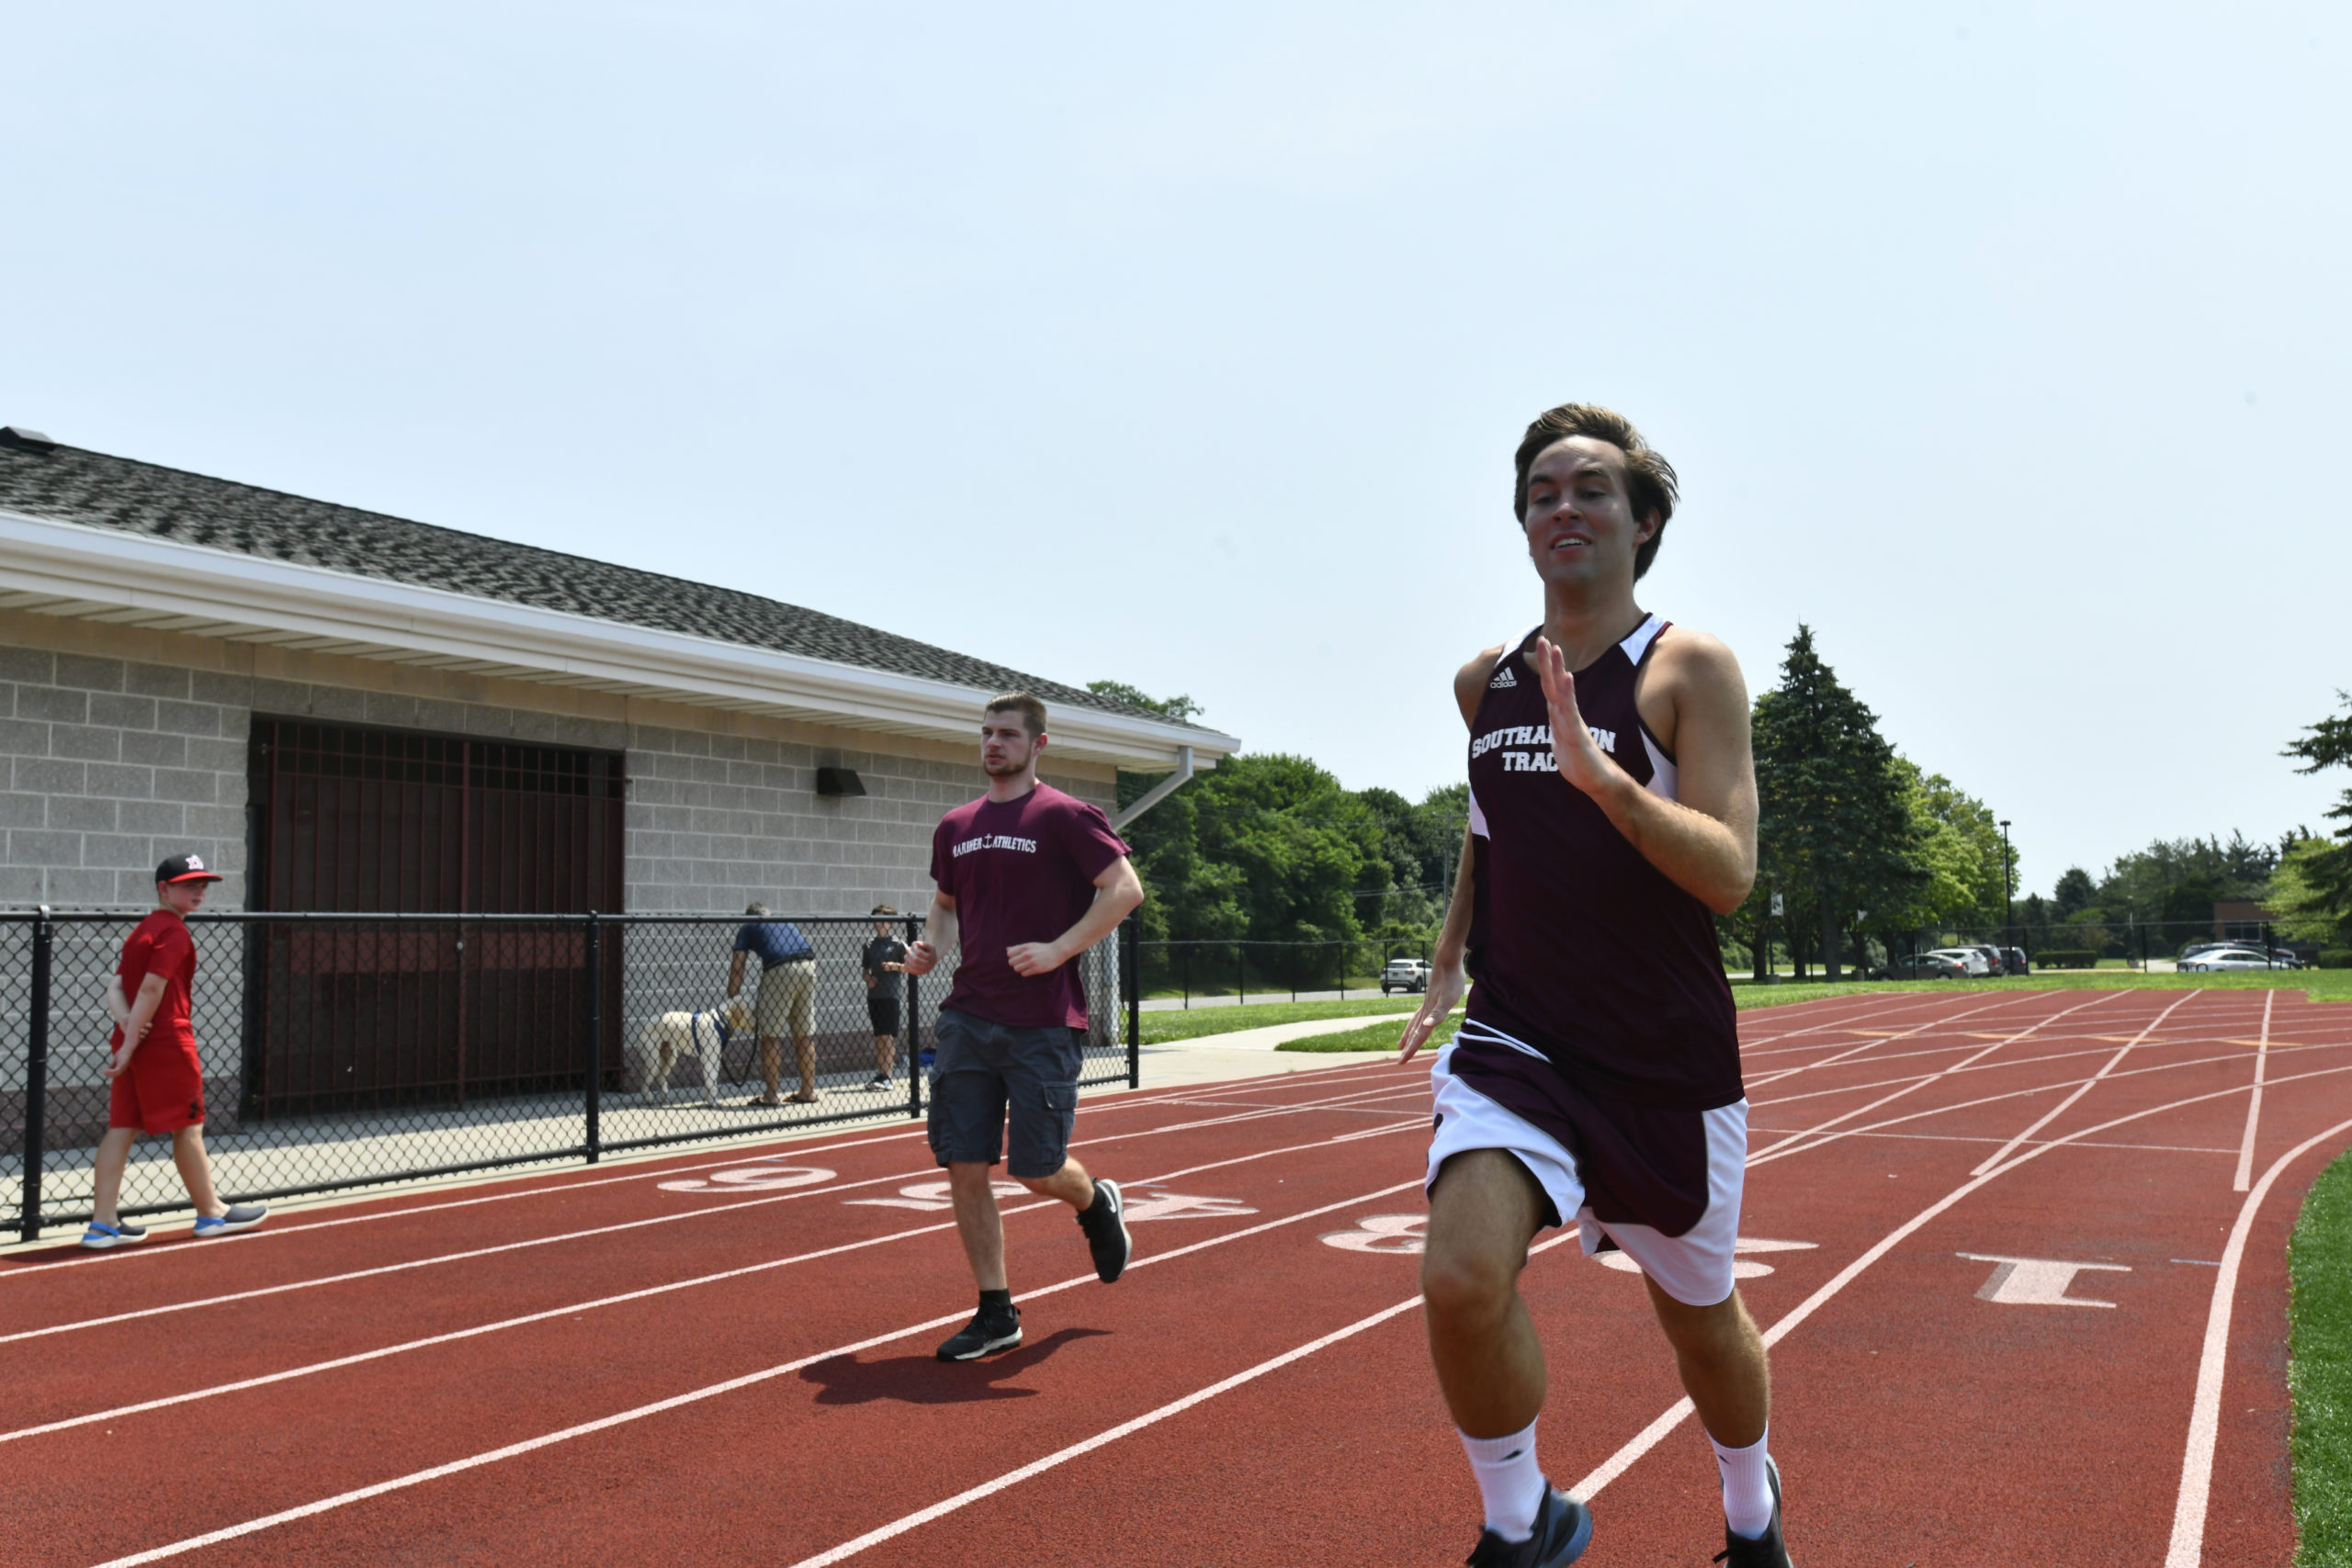 Southampton residents Ross Ebrus, left, and William Segarra will represent Team New York at the Special Olympics USA Games, in track and field, next June in Orlando, Florida. They were chosen based on their performances at the 2019 State Games. Segarra competes in the long jump and 1,600-meter race, while Ebrus competes in the shot put and 800-meter race.   DANA SHAW